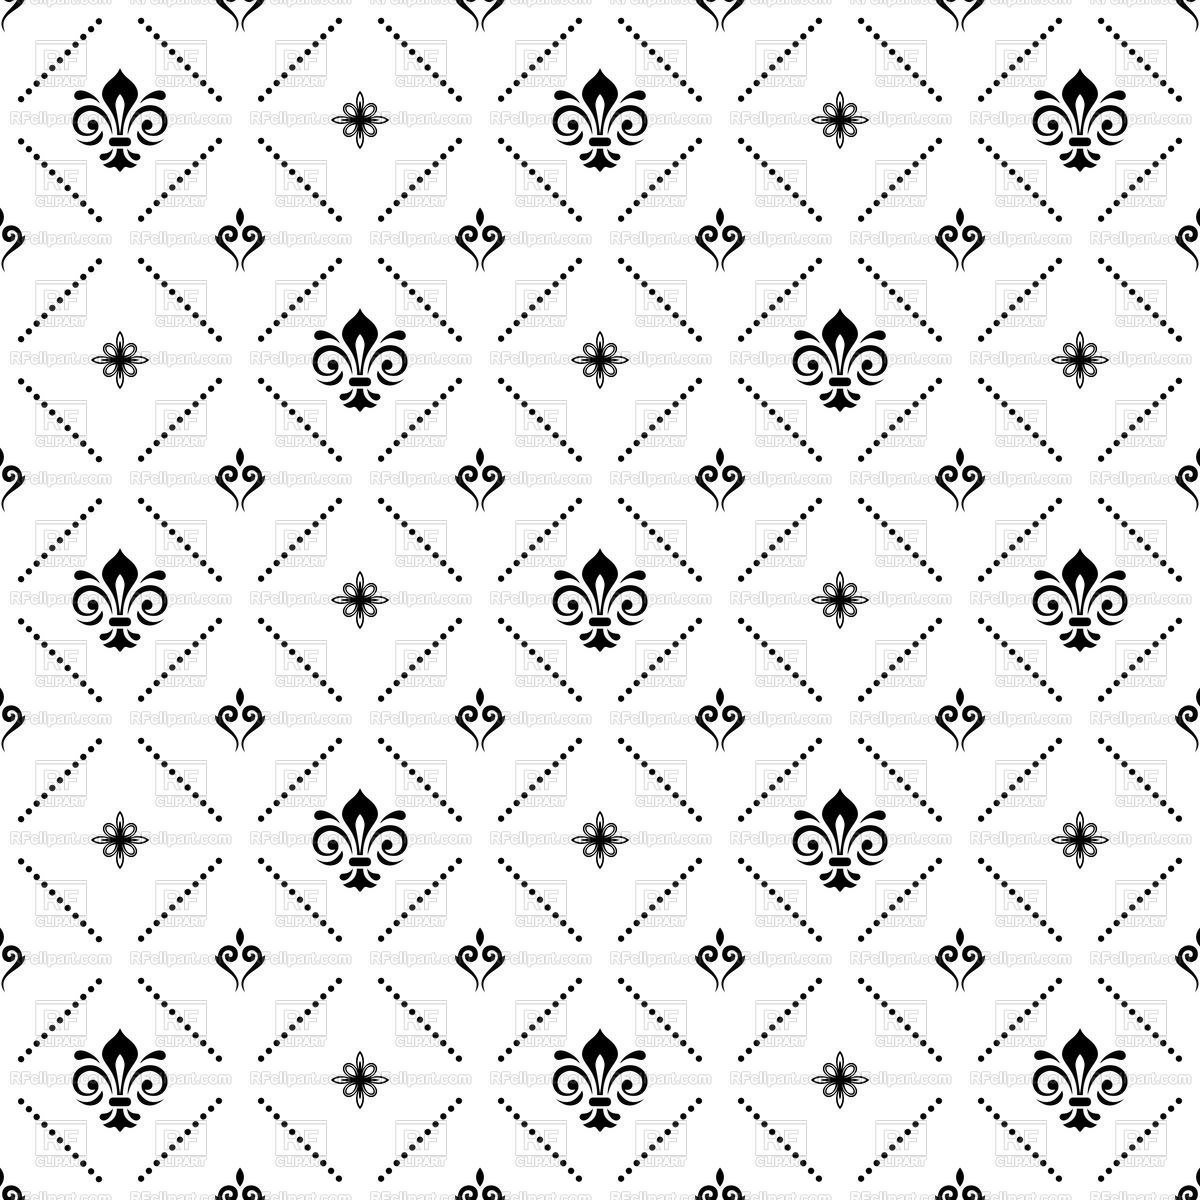 Royal pattern clipart vector download Seamless royal black and white pattern Vector Image – Vector ... vector download